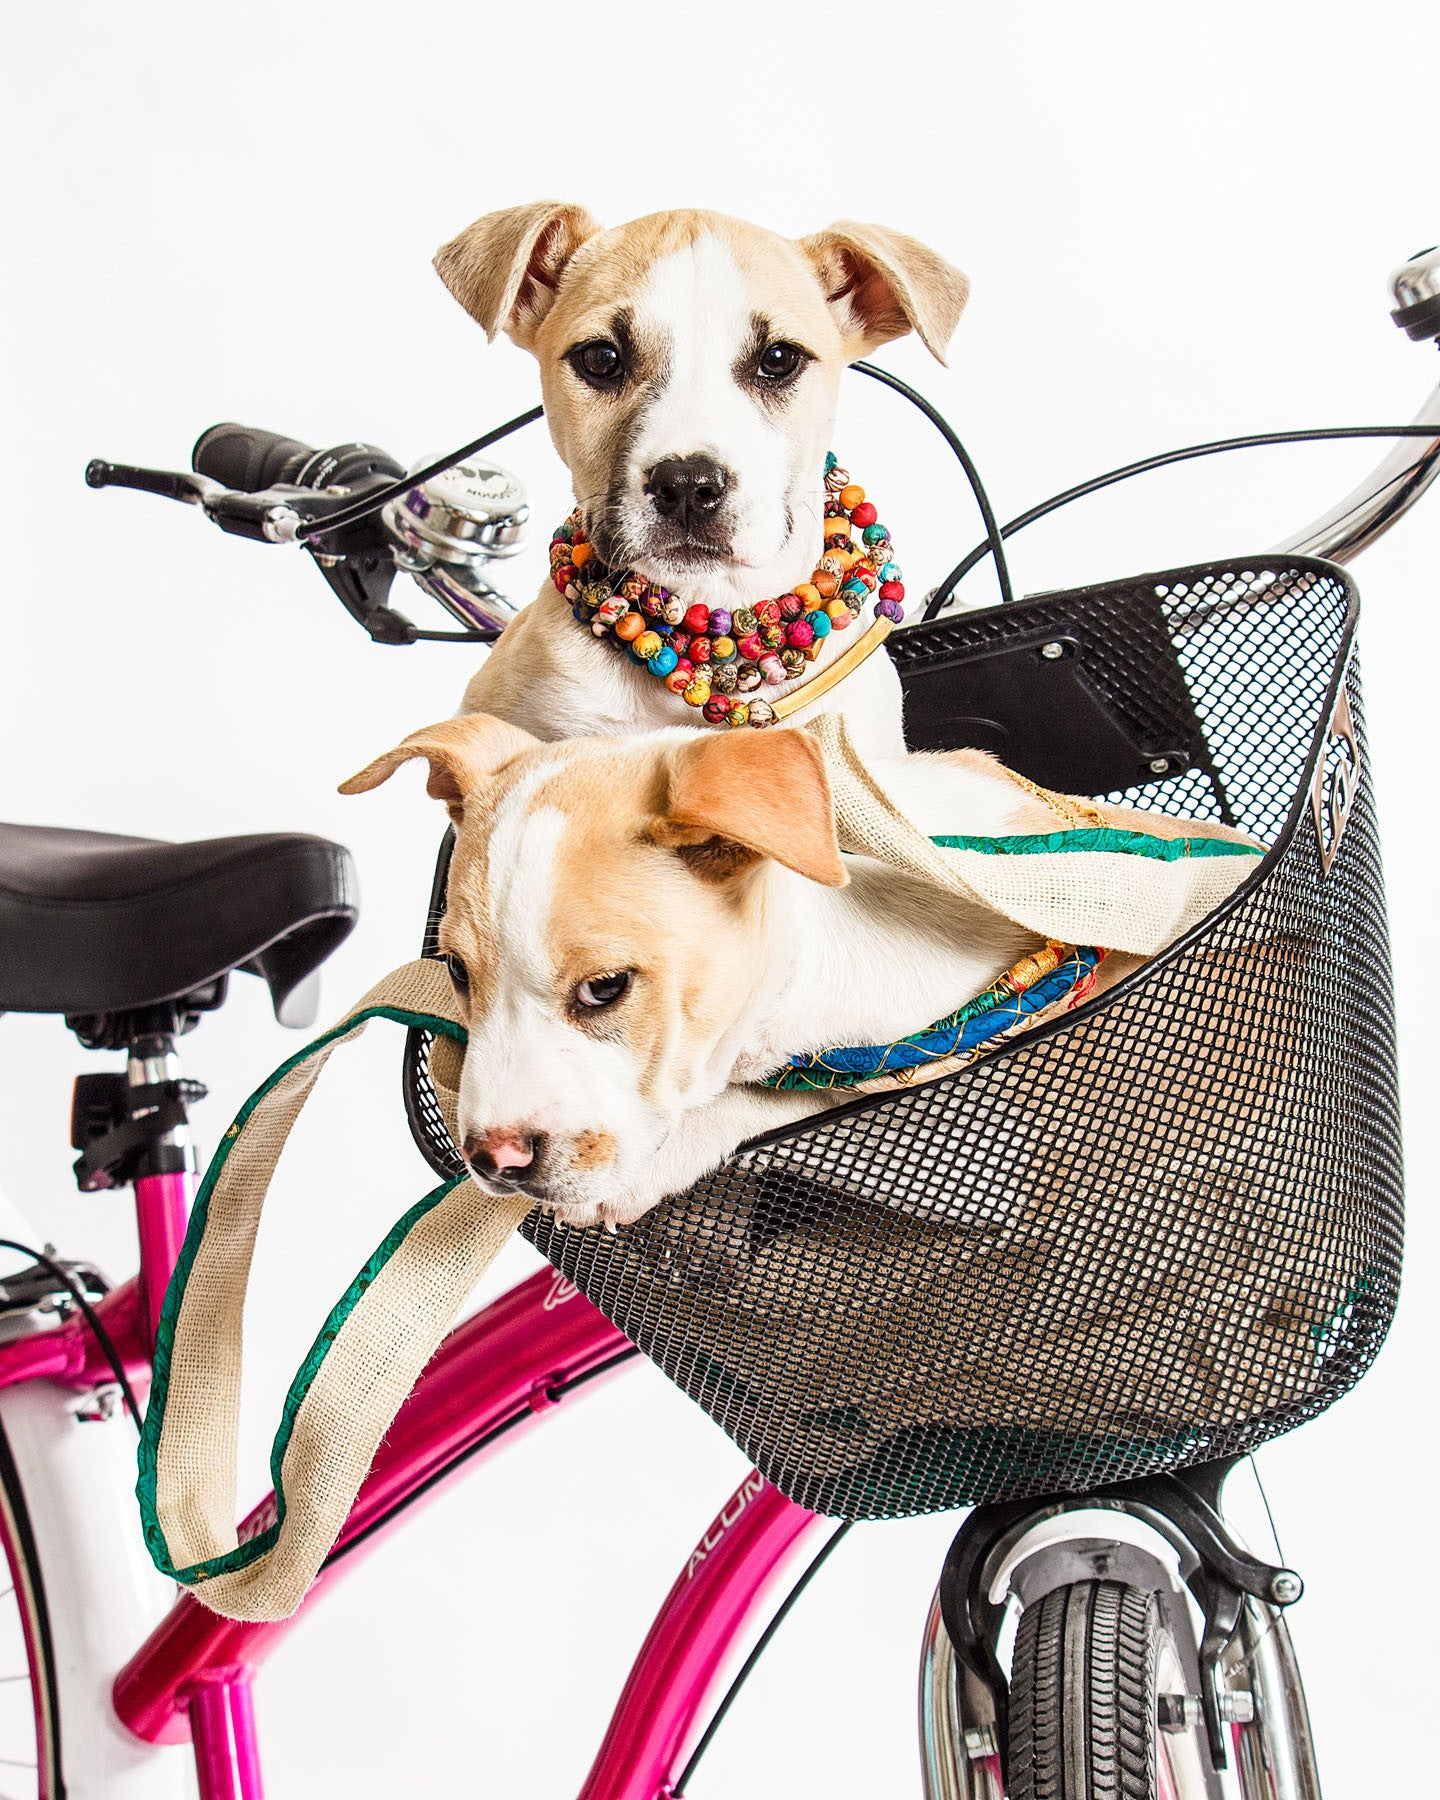 Puppies Sarah Jessica Barker and Fuzz Lightyear rode away with our hearts at our photoshoot. Here they are in the Who's Sari Now? Nivi Necklaces and Kabhi Kabhi Nilgiri Necklaces.